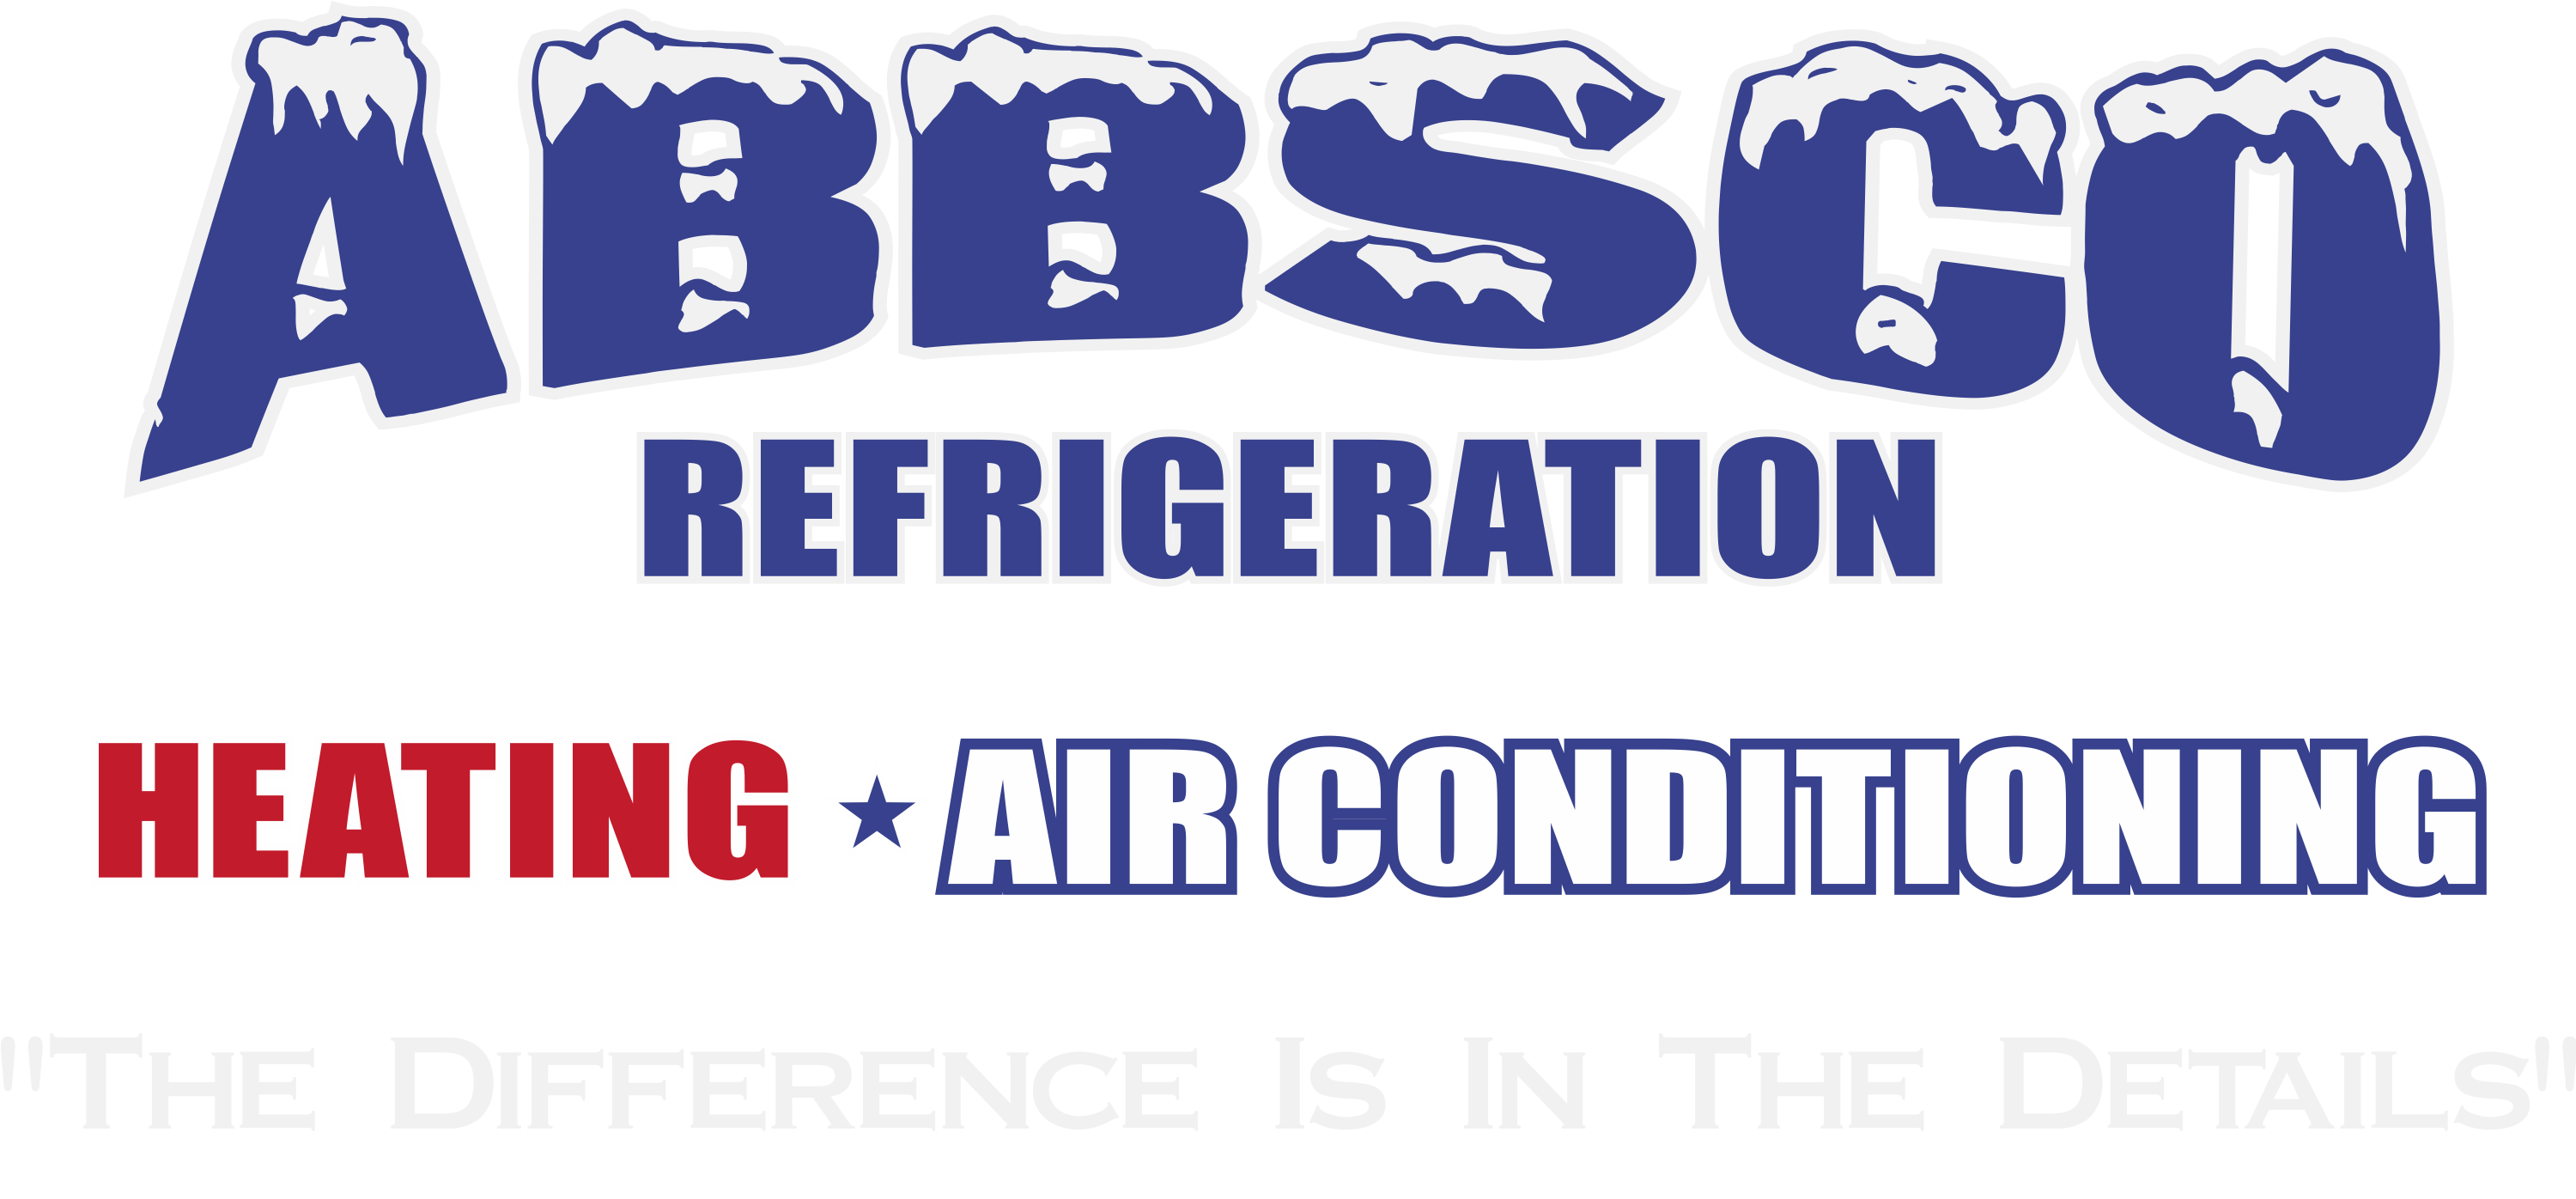 Abbsco Refrigeration Heating & Air Conditioning